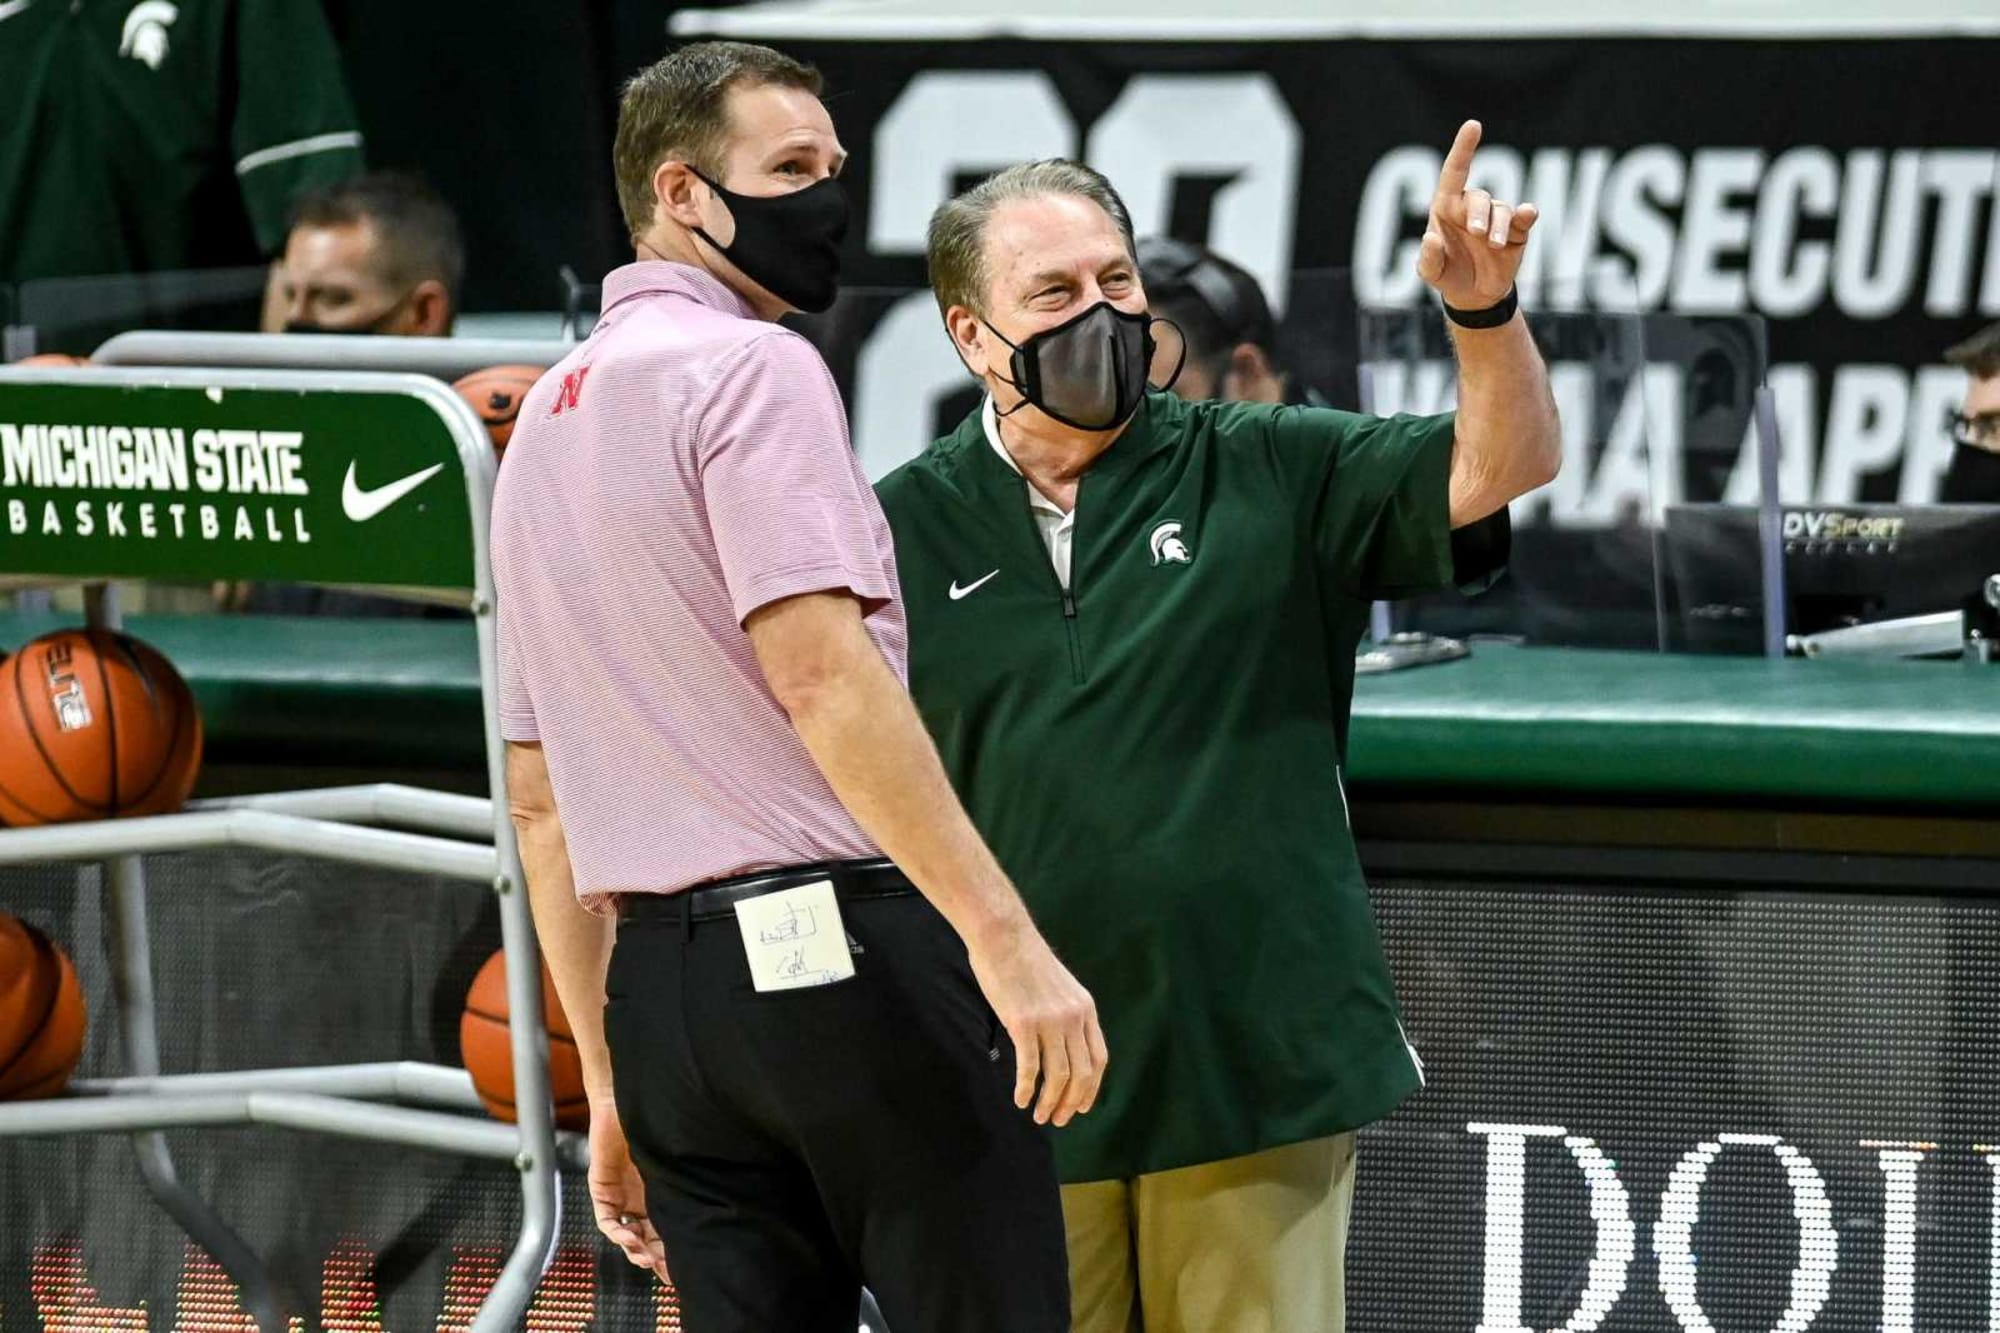 Michigan State Basketball: 5 potential eventual replacements for Tom Izzo